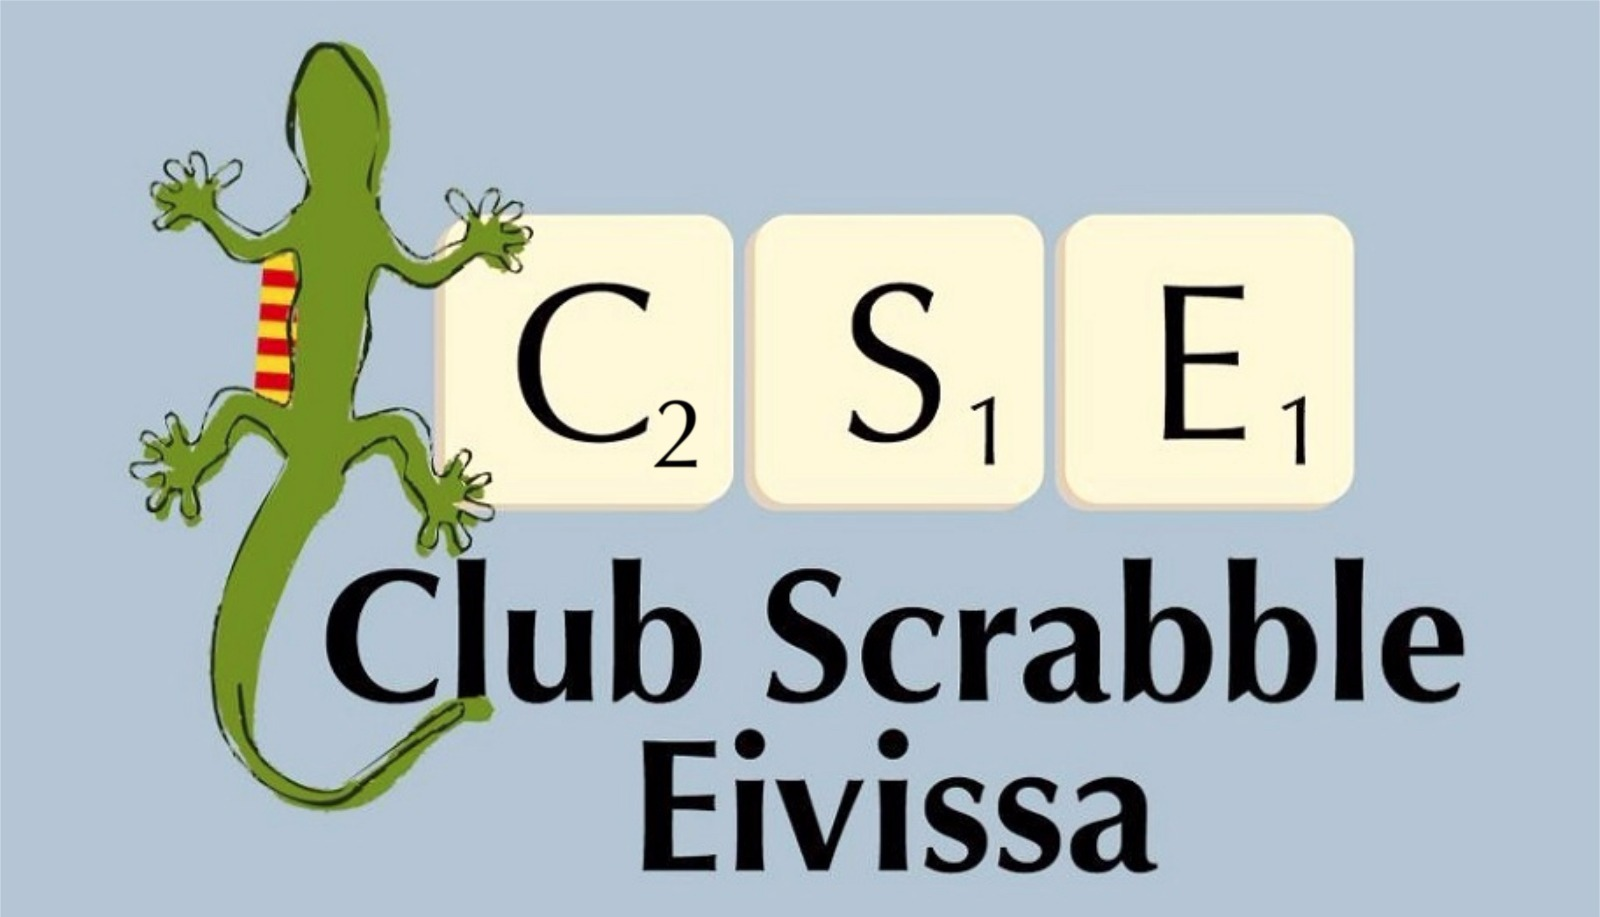 Club Scrabble Eivissa